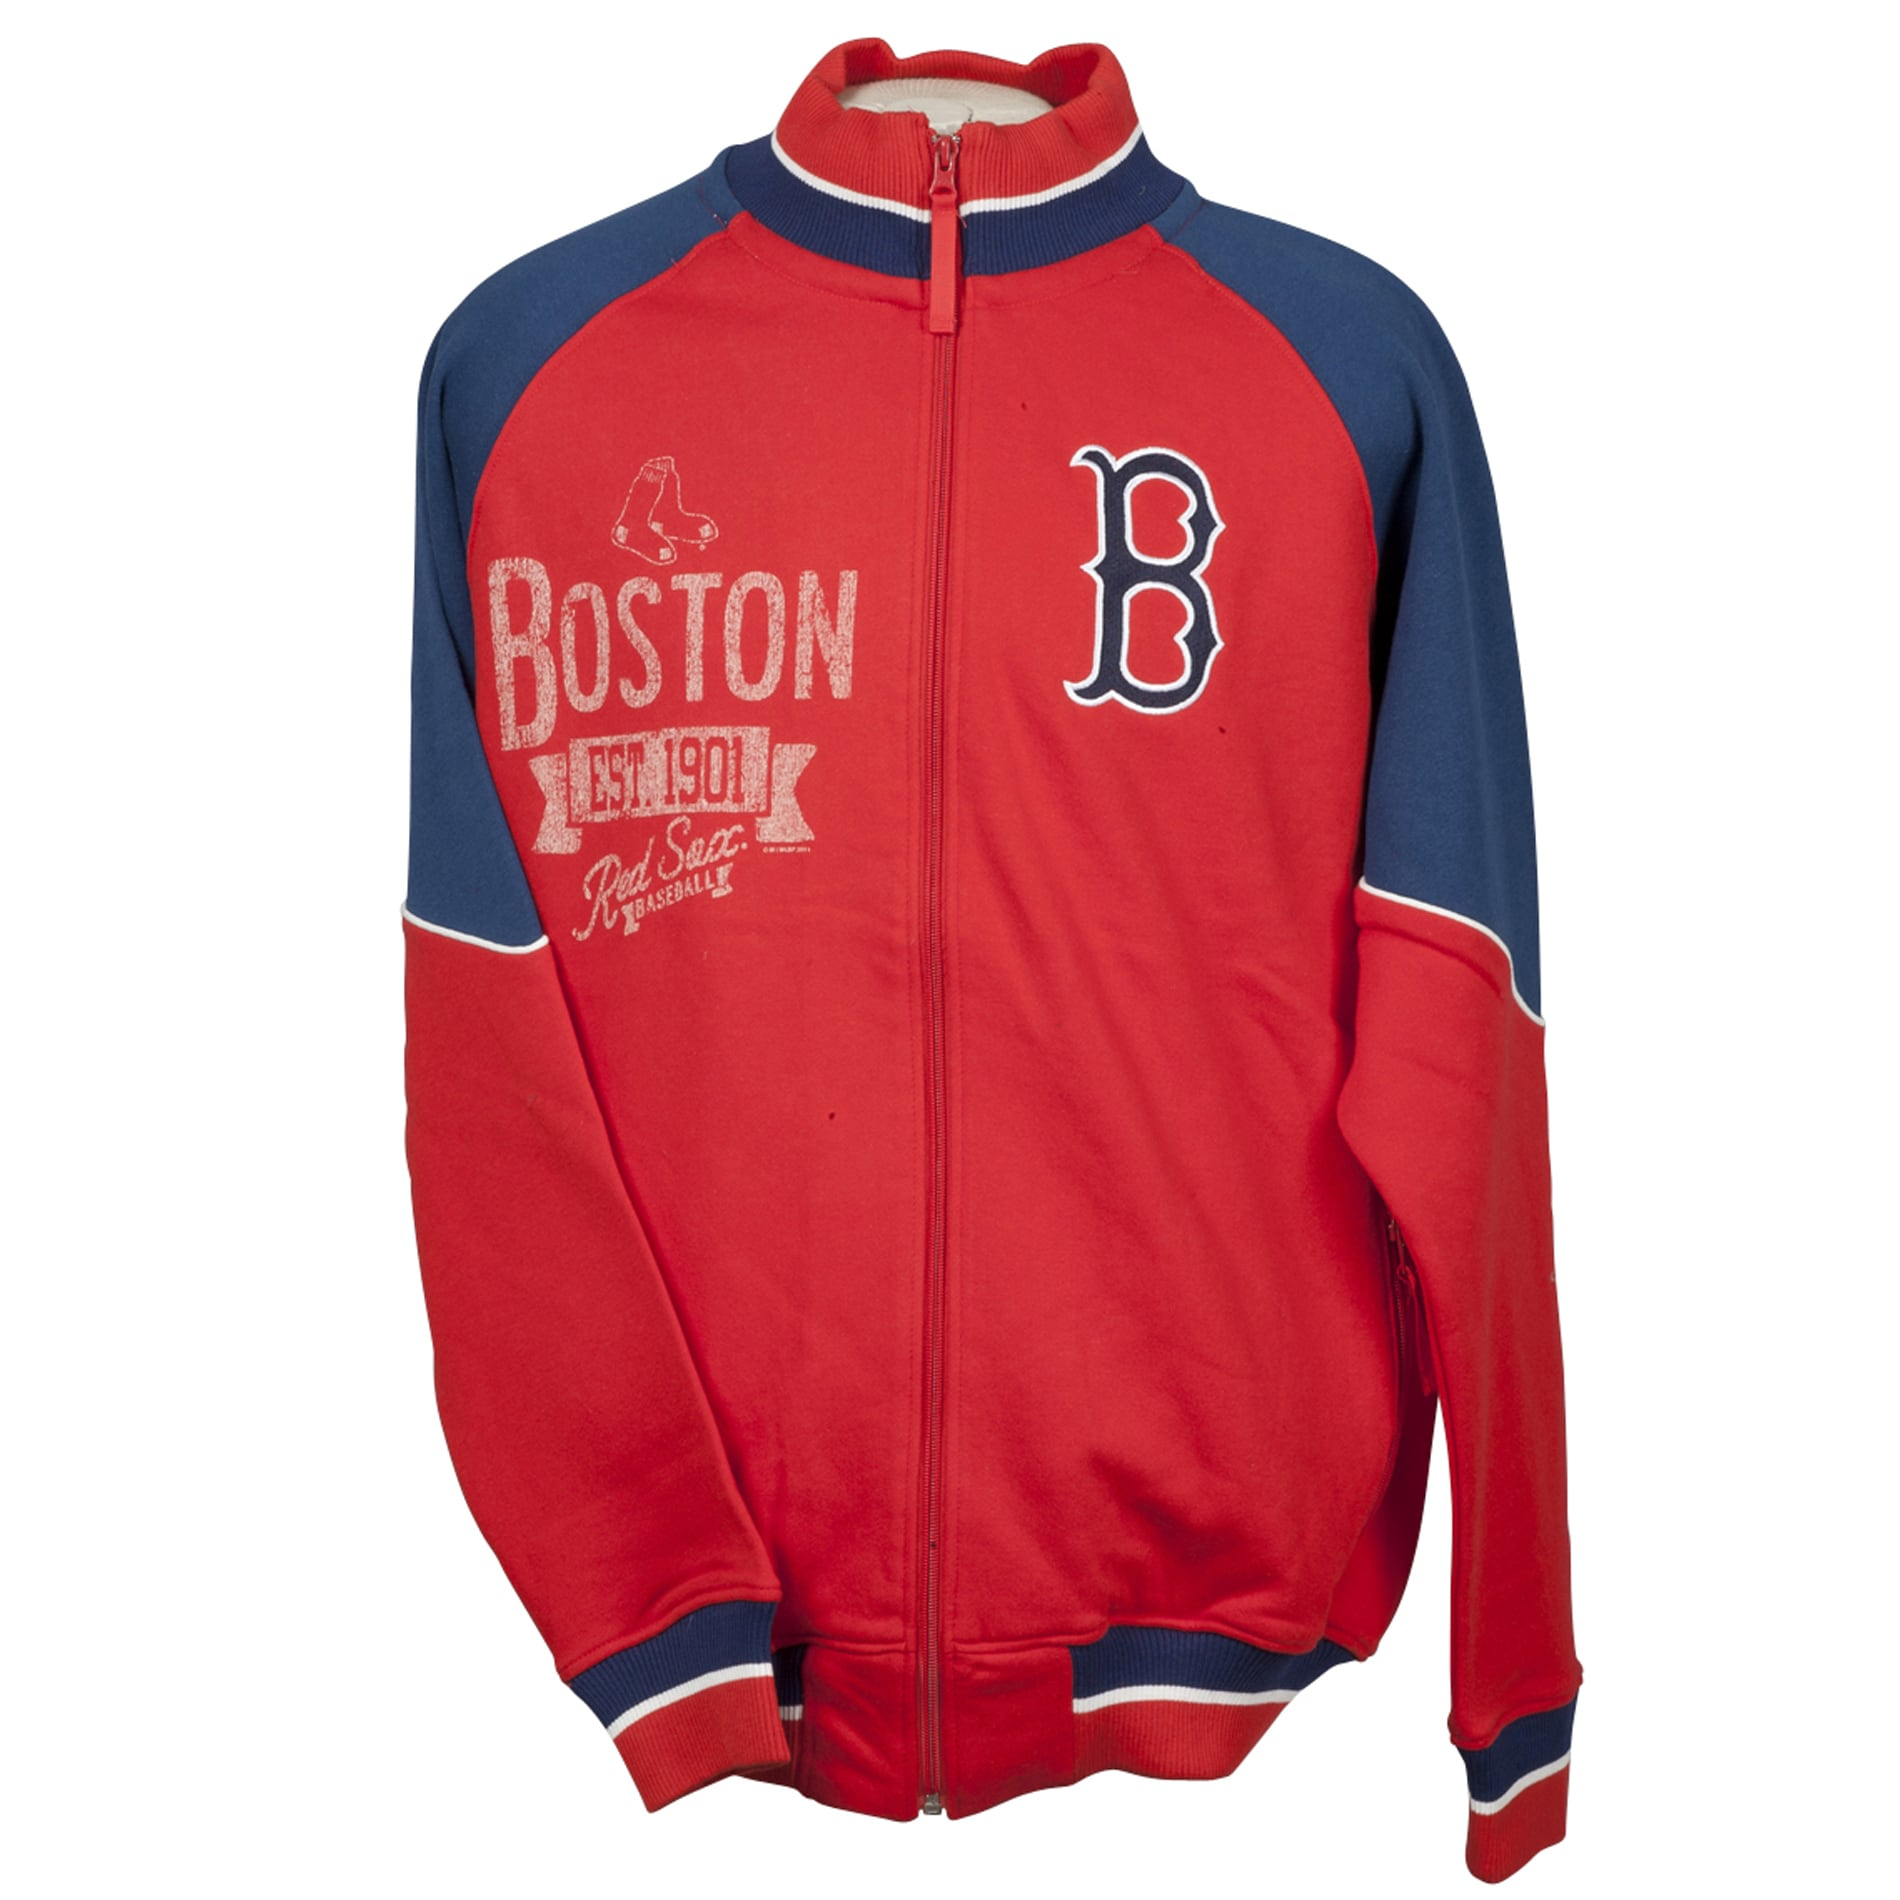 Boston Red Sox Full Zip Cotton Track Jacket - Thumbnail 0